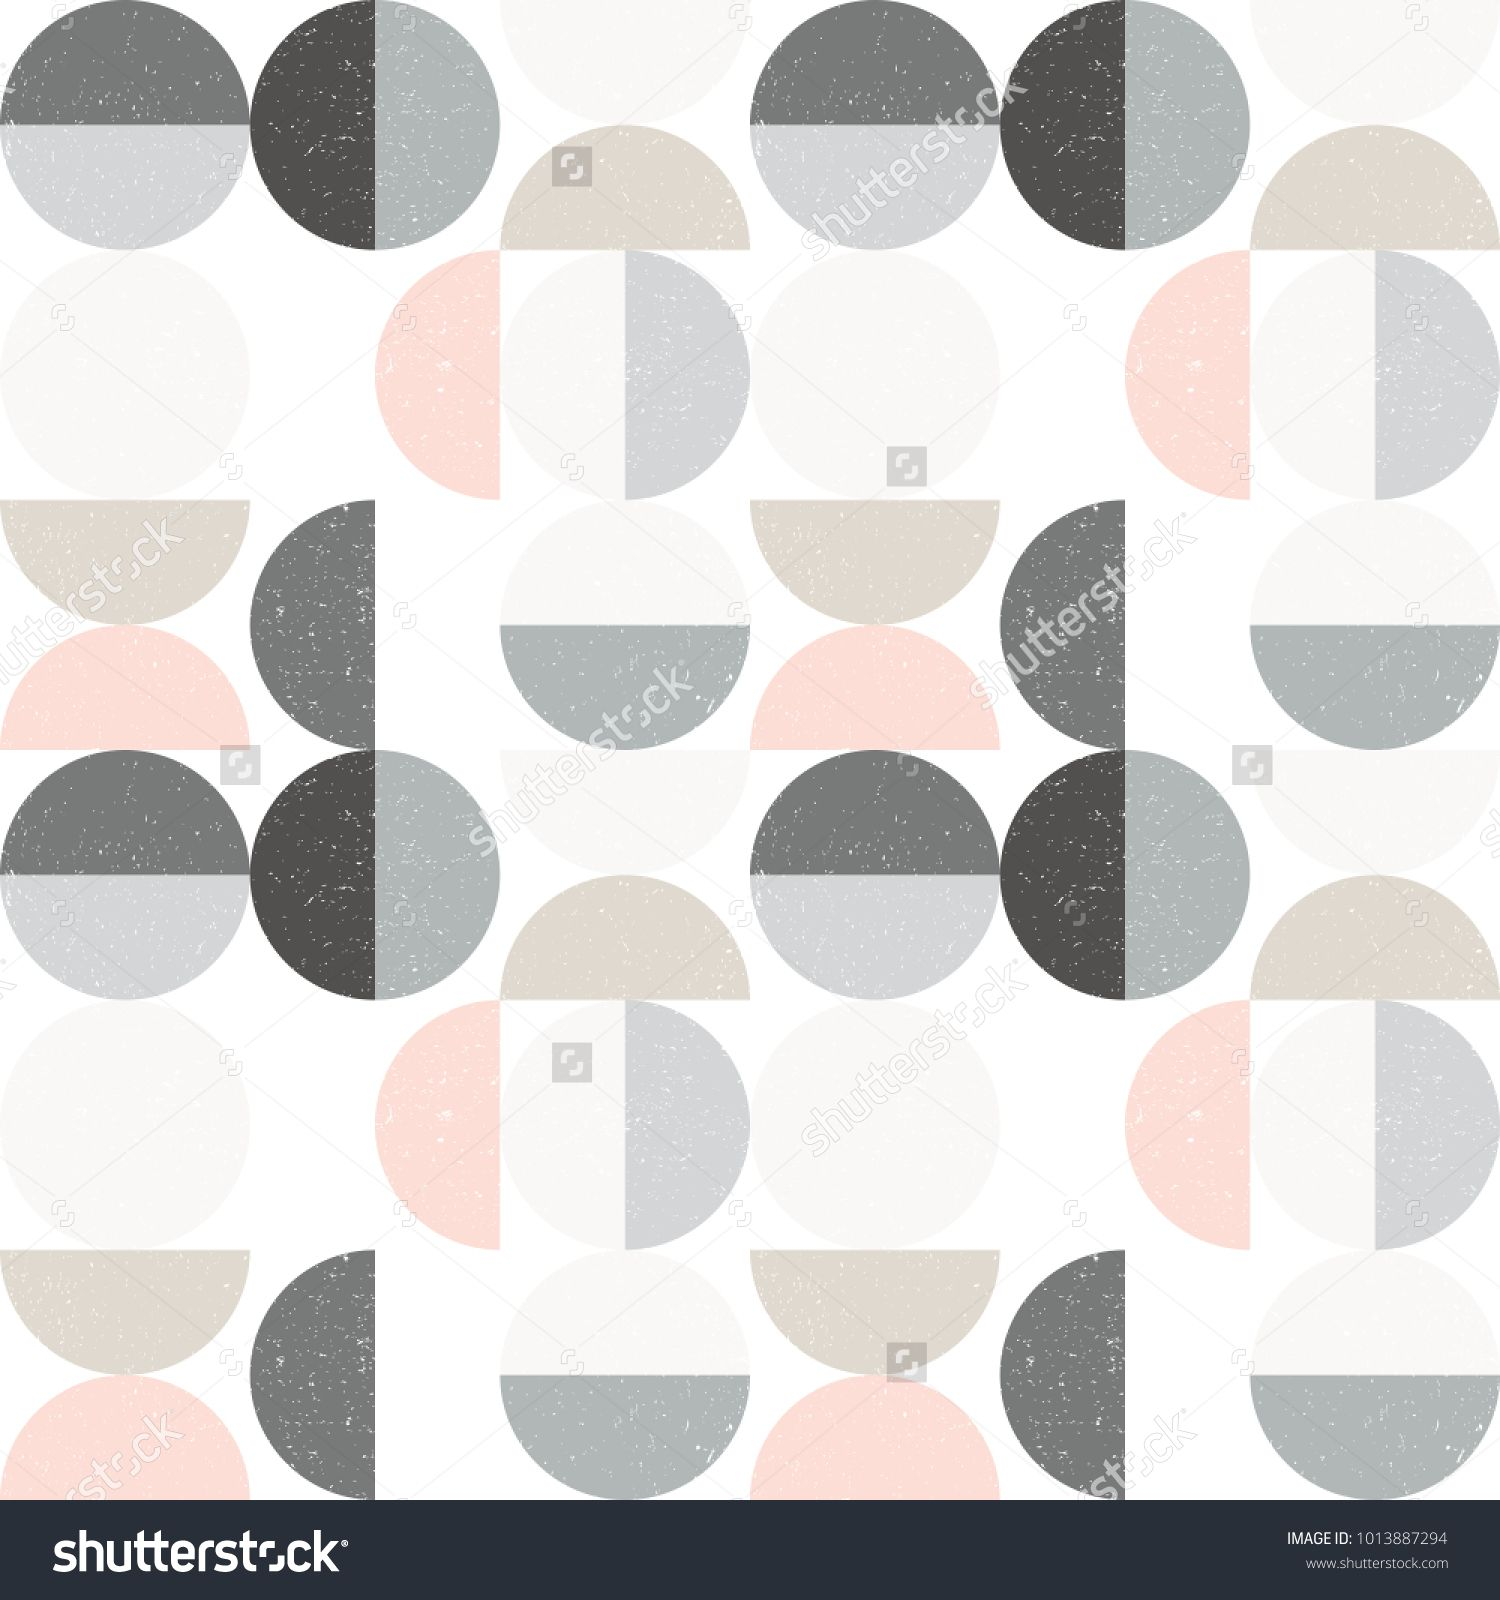 Modern Vector Abstract Seamless Geometric Pattern With Semicircles And Circles In Retro Scandinavian Style Pastel Colors Shapes With Worn Out Texture On White